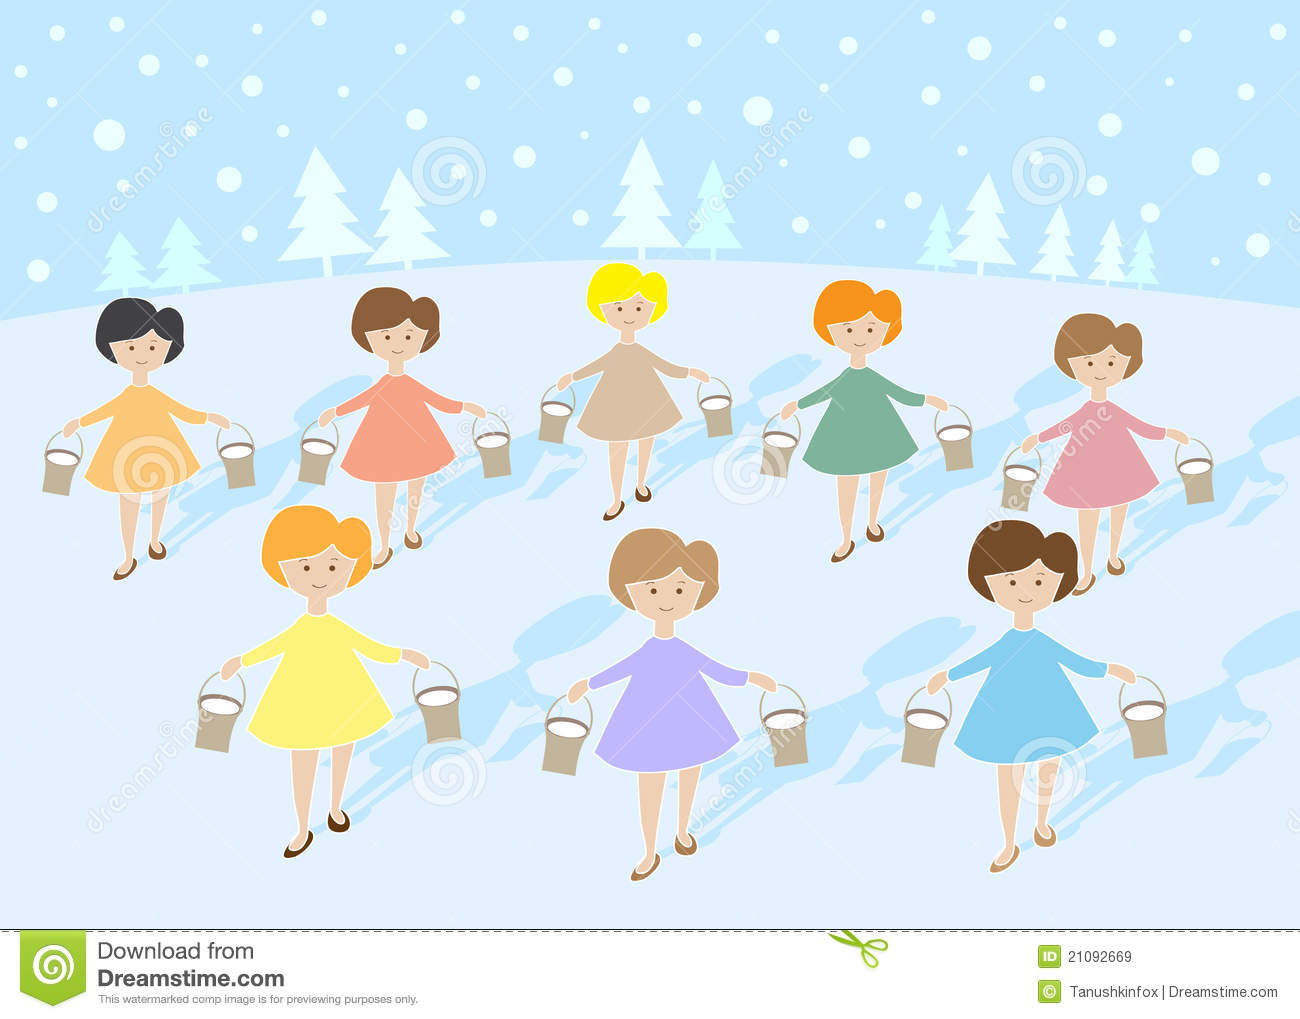 Calling Birds 12 Days Christmas >> 12 Days Of Christmas: 8 Maids A Milking Royalty Free Stock Images - Image: 21092669